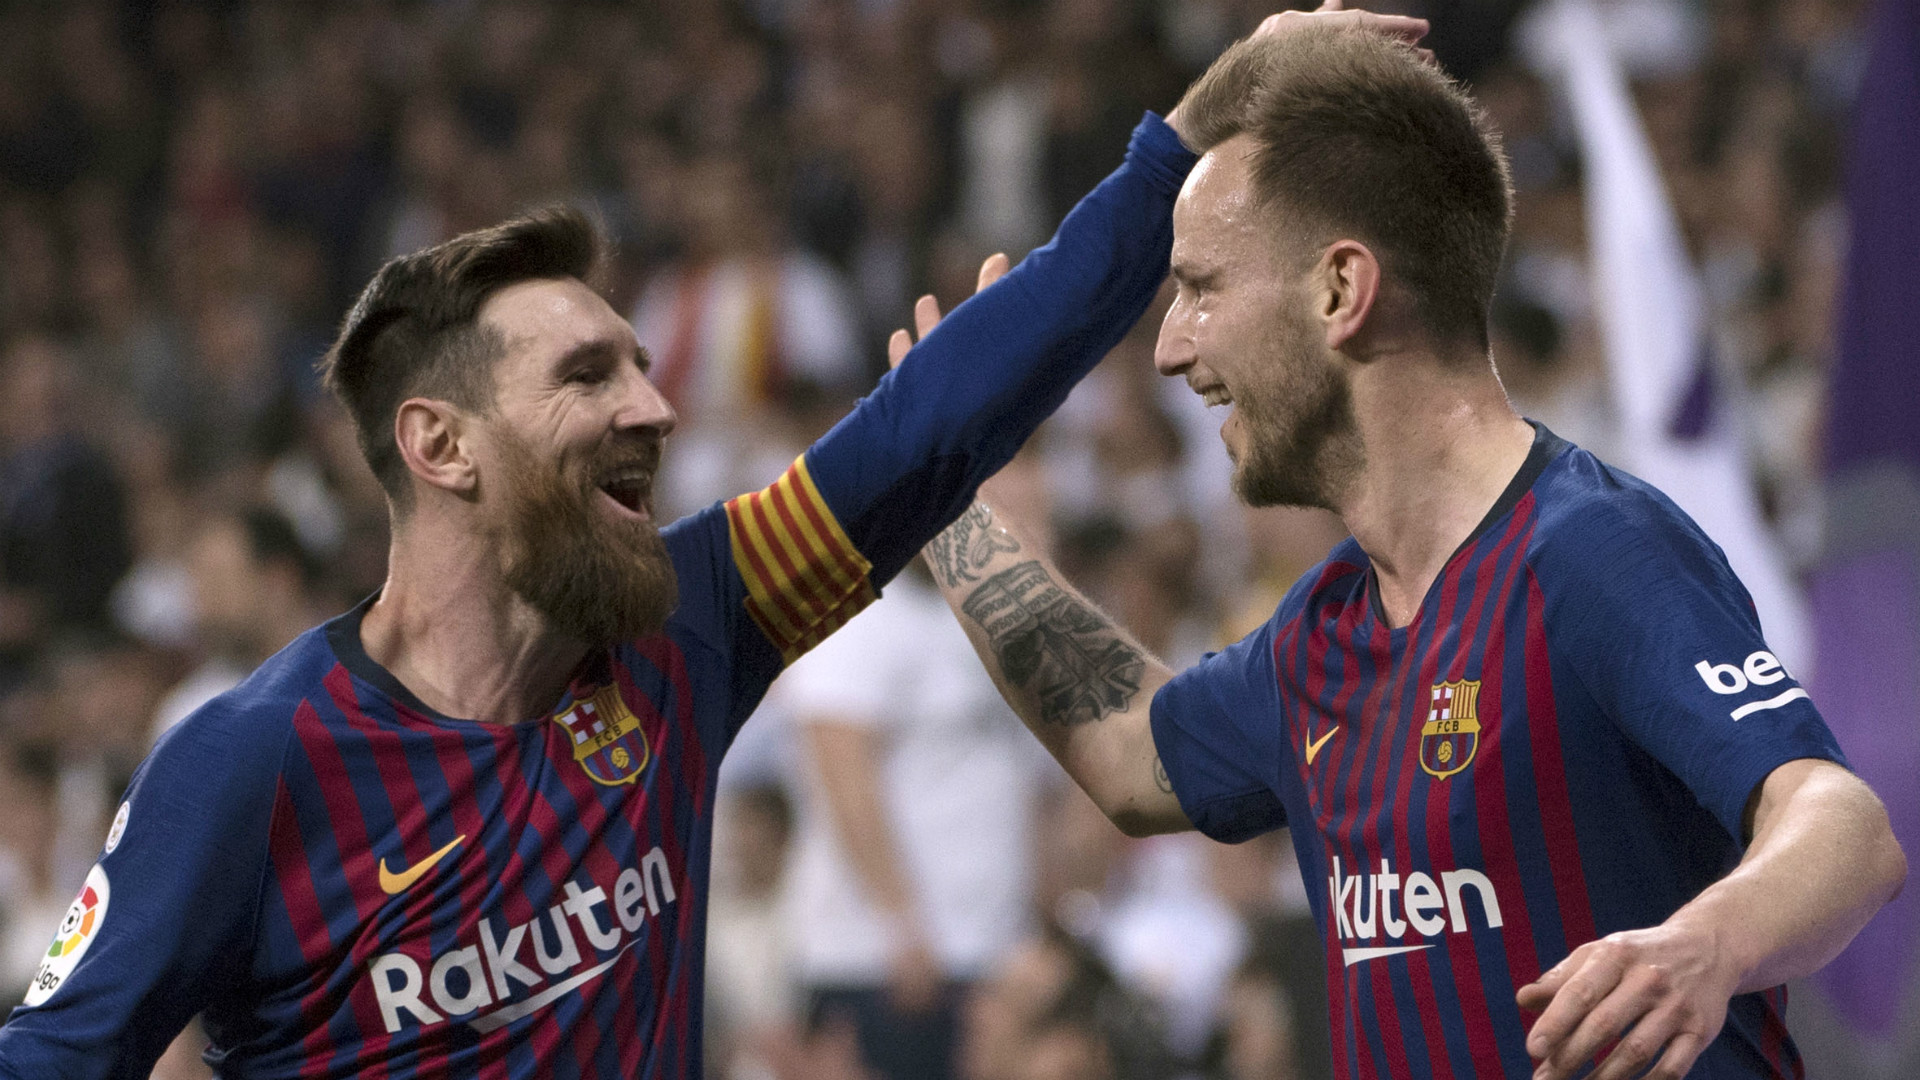 'We would find a place for Messi!' - Rakitic jokes about Barcelona star joining him at Sevilla